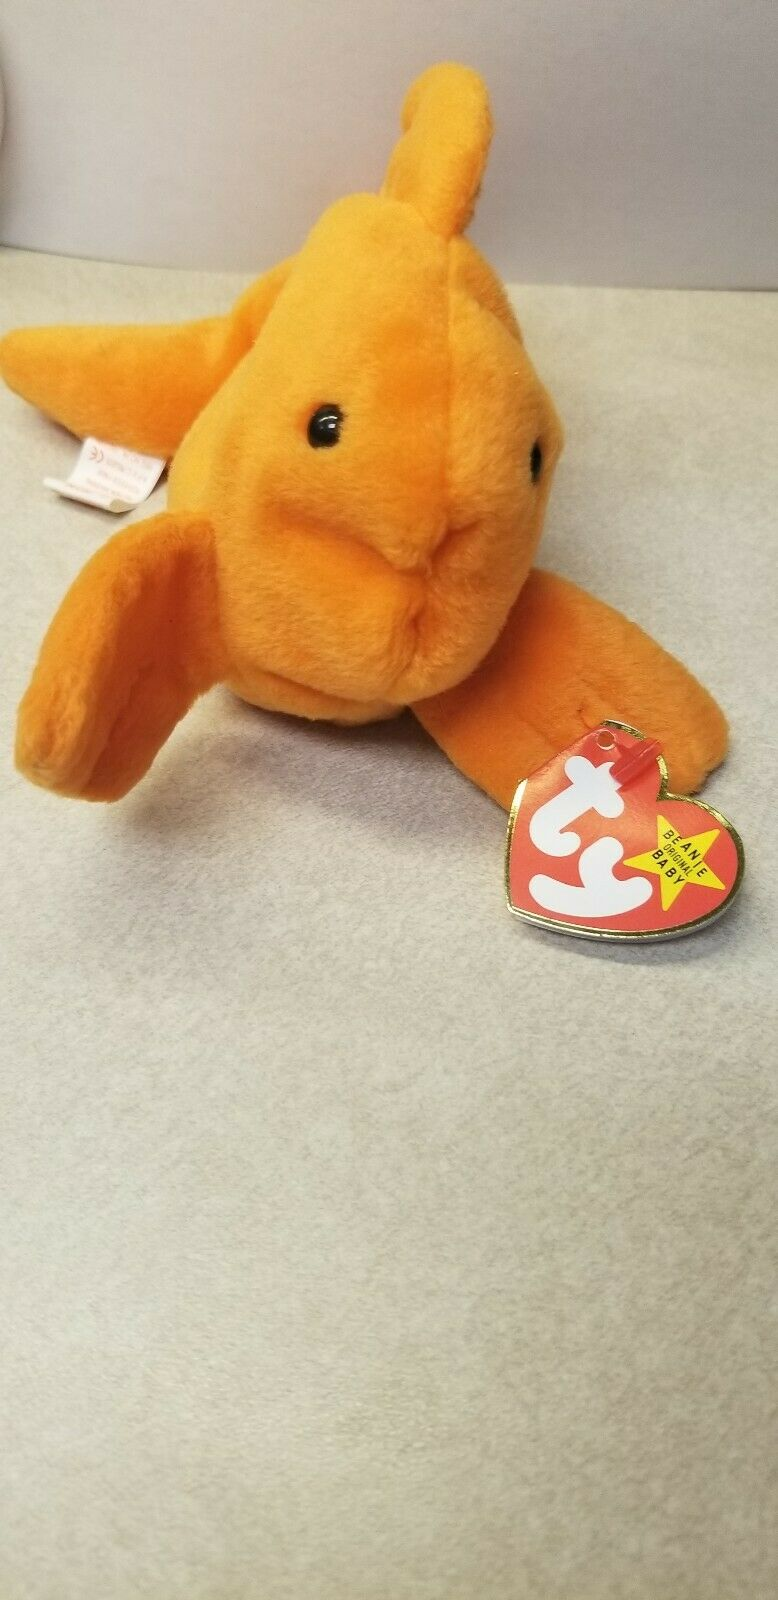 TY goldie Beanie Baby (rare and retired) - 1993 - - - 4th Generation f3caf5